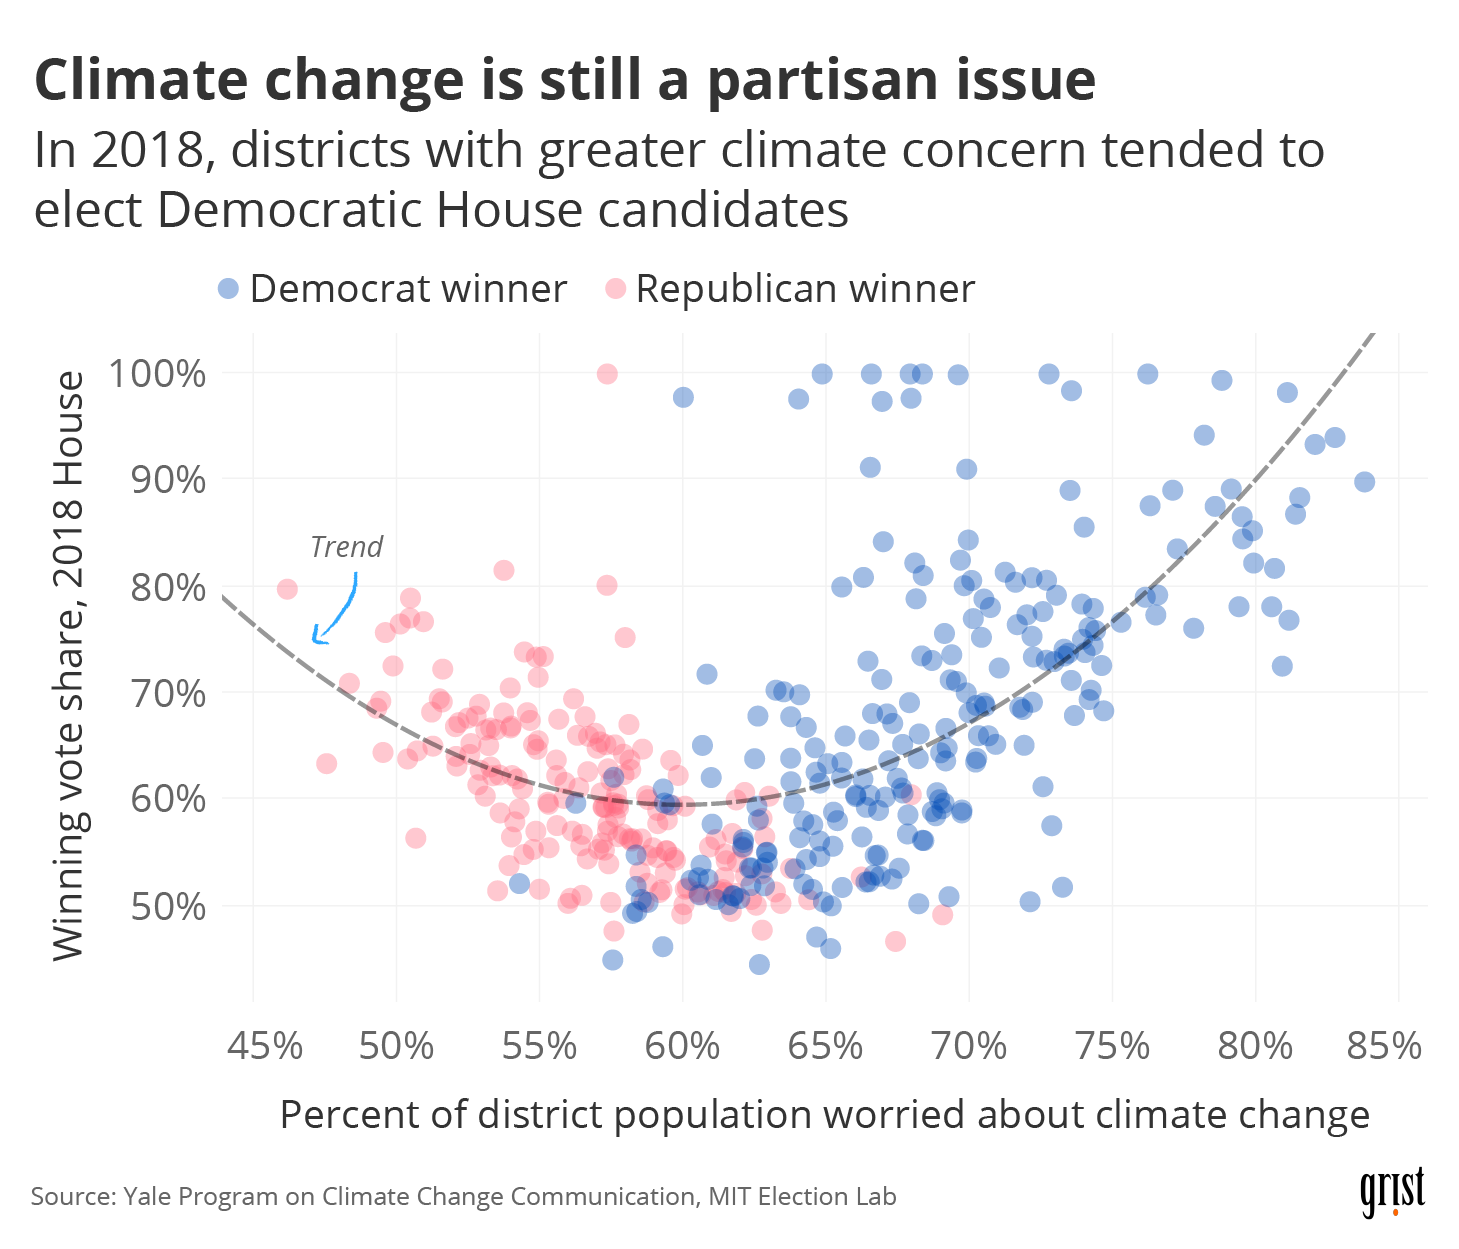 A scatter plot showing U.S. Congressional district climate concern versus 2018 House race competitiveness. The scatter plot forms a rough U-shape, with more concerned districts leaning heavily Democratic and less-concerned districts leaning heavily Republican. Toss-up districts are at the bottom of the U.